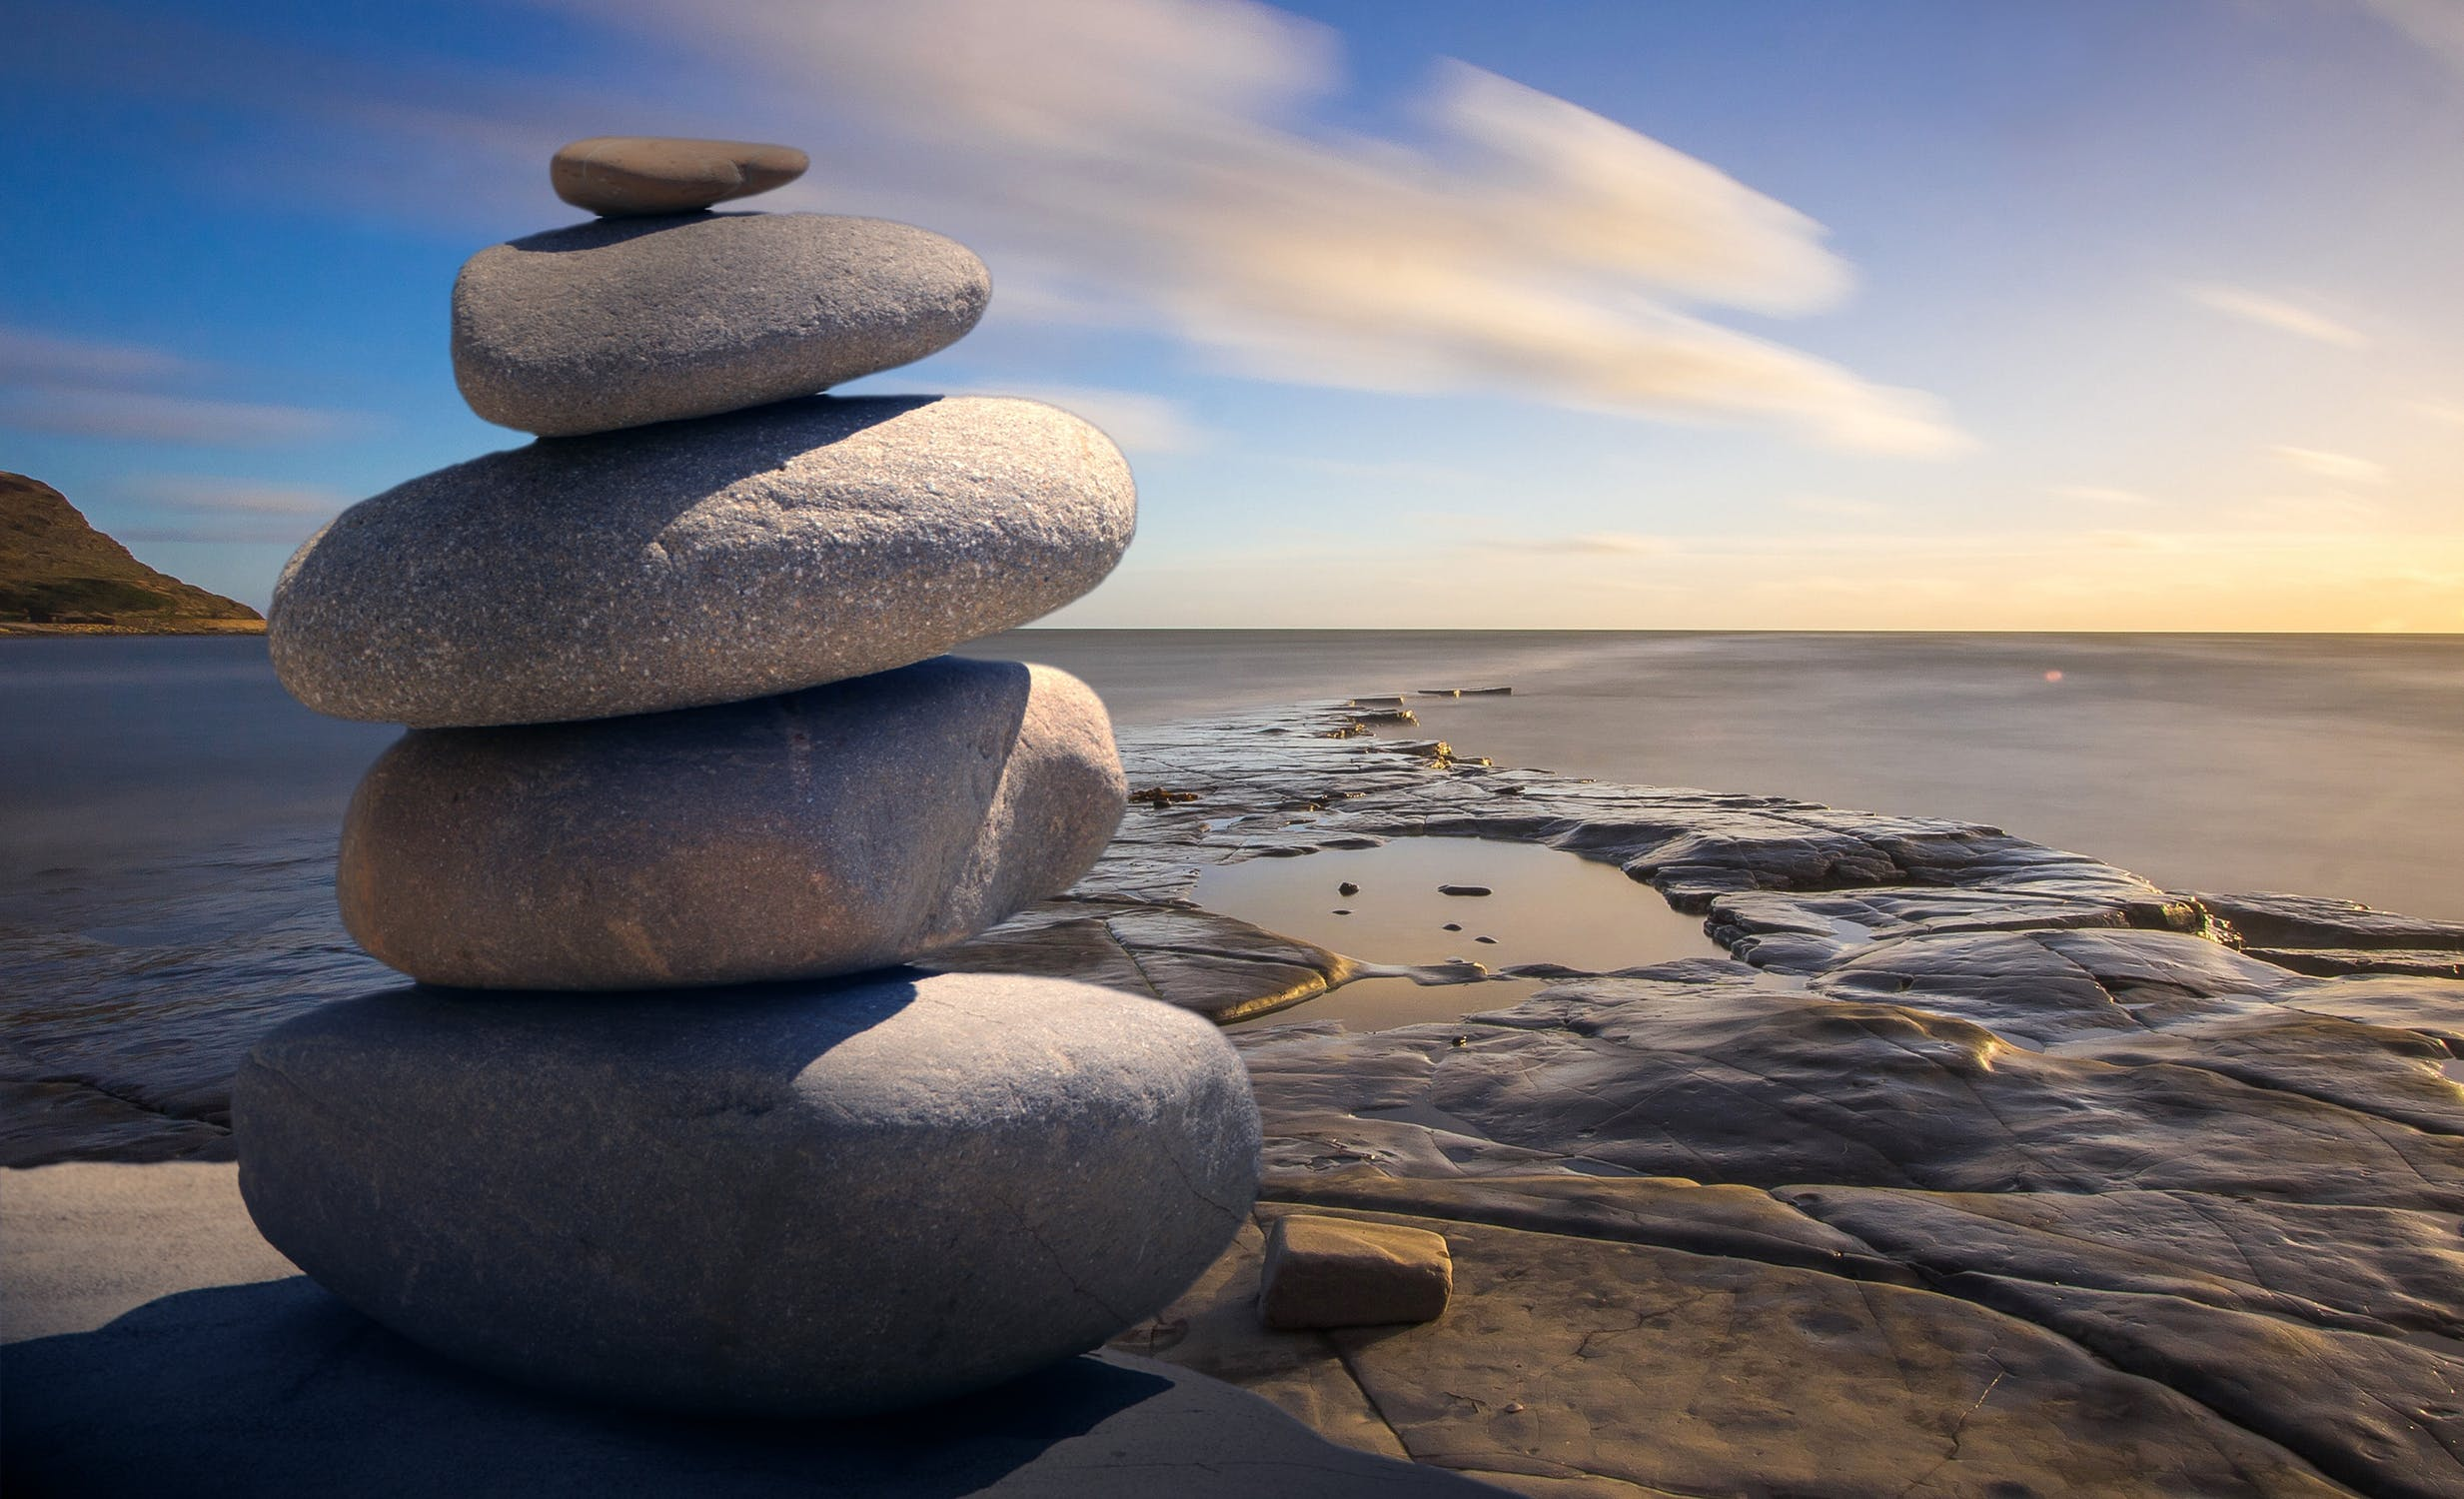 cairn of rocks by the ocean